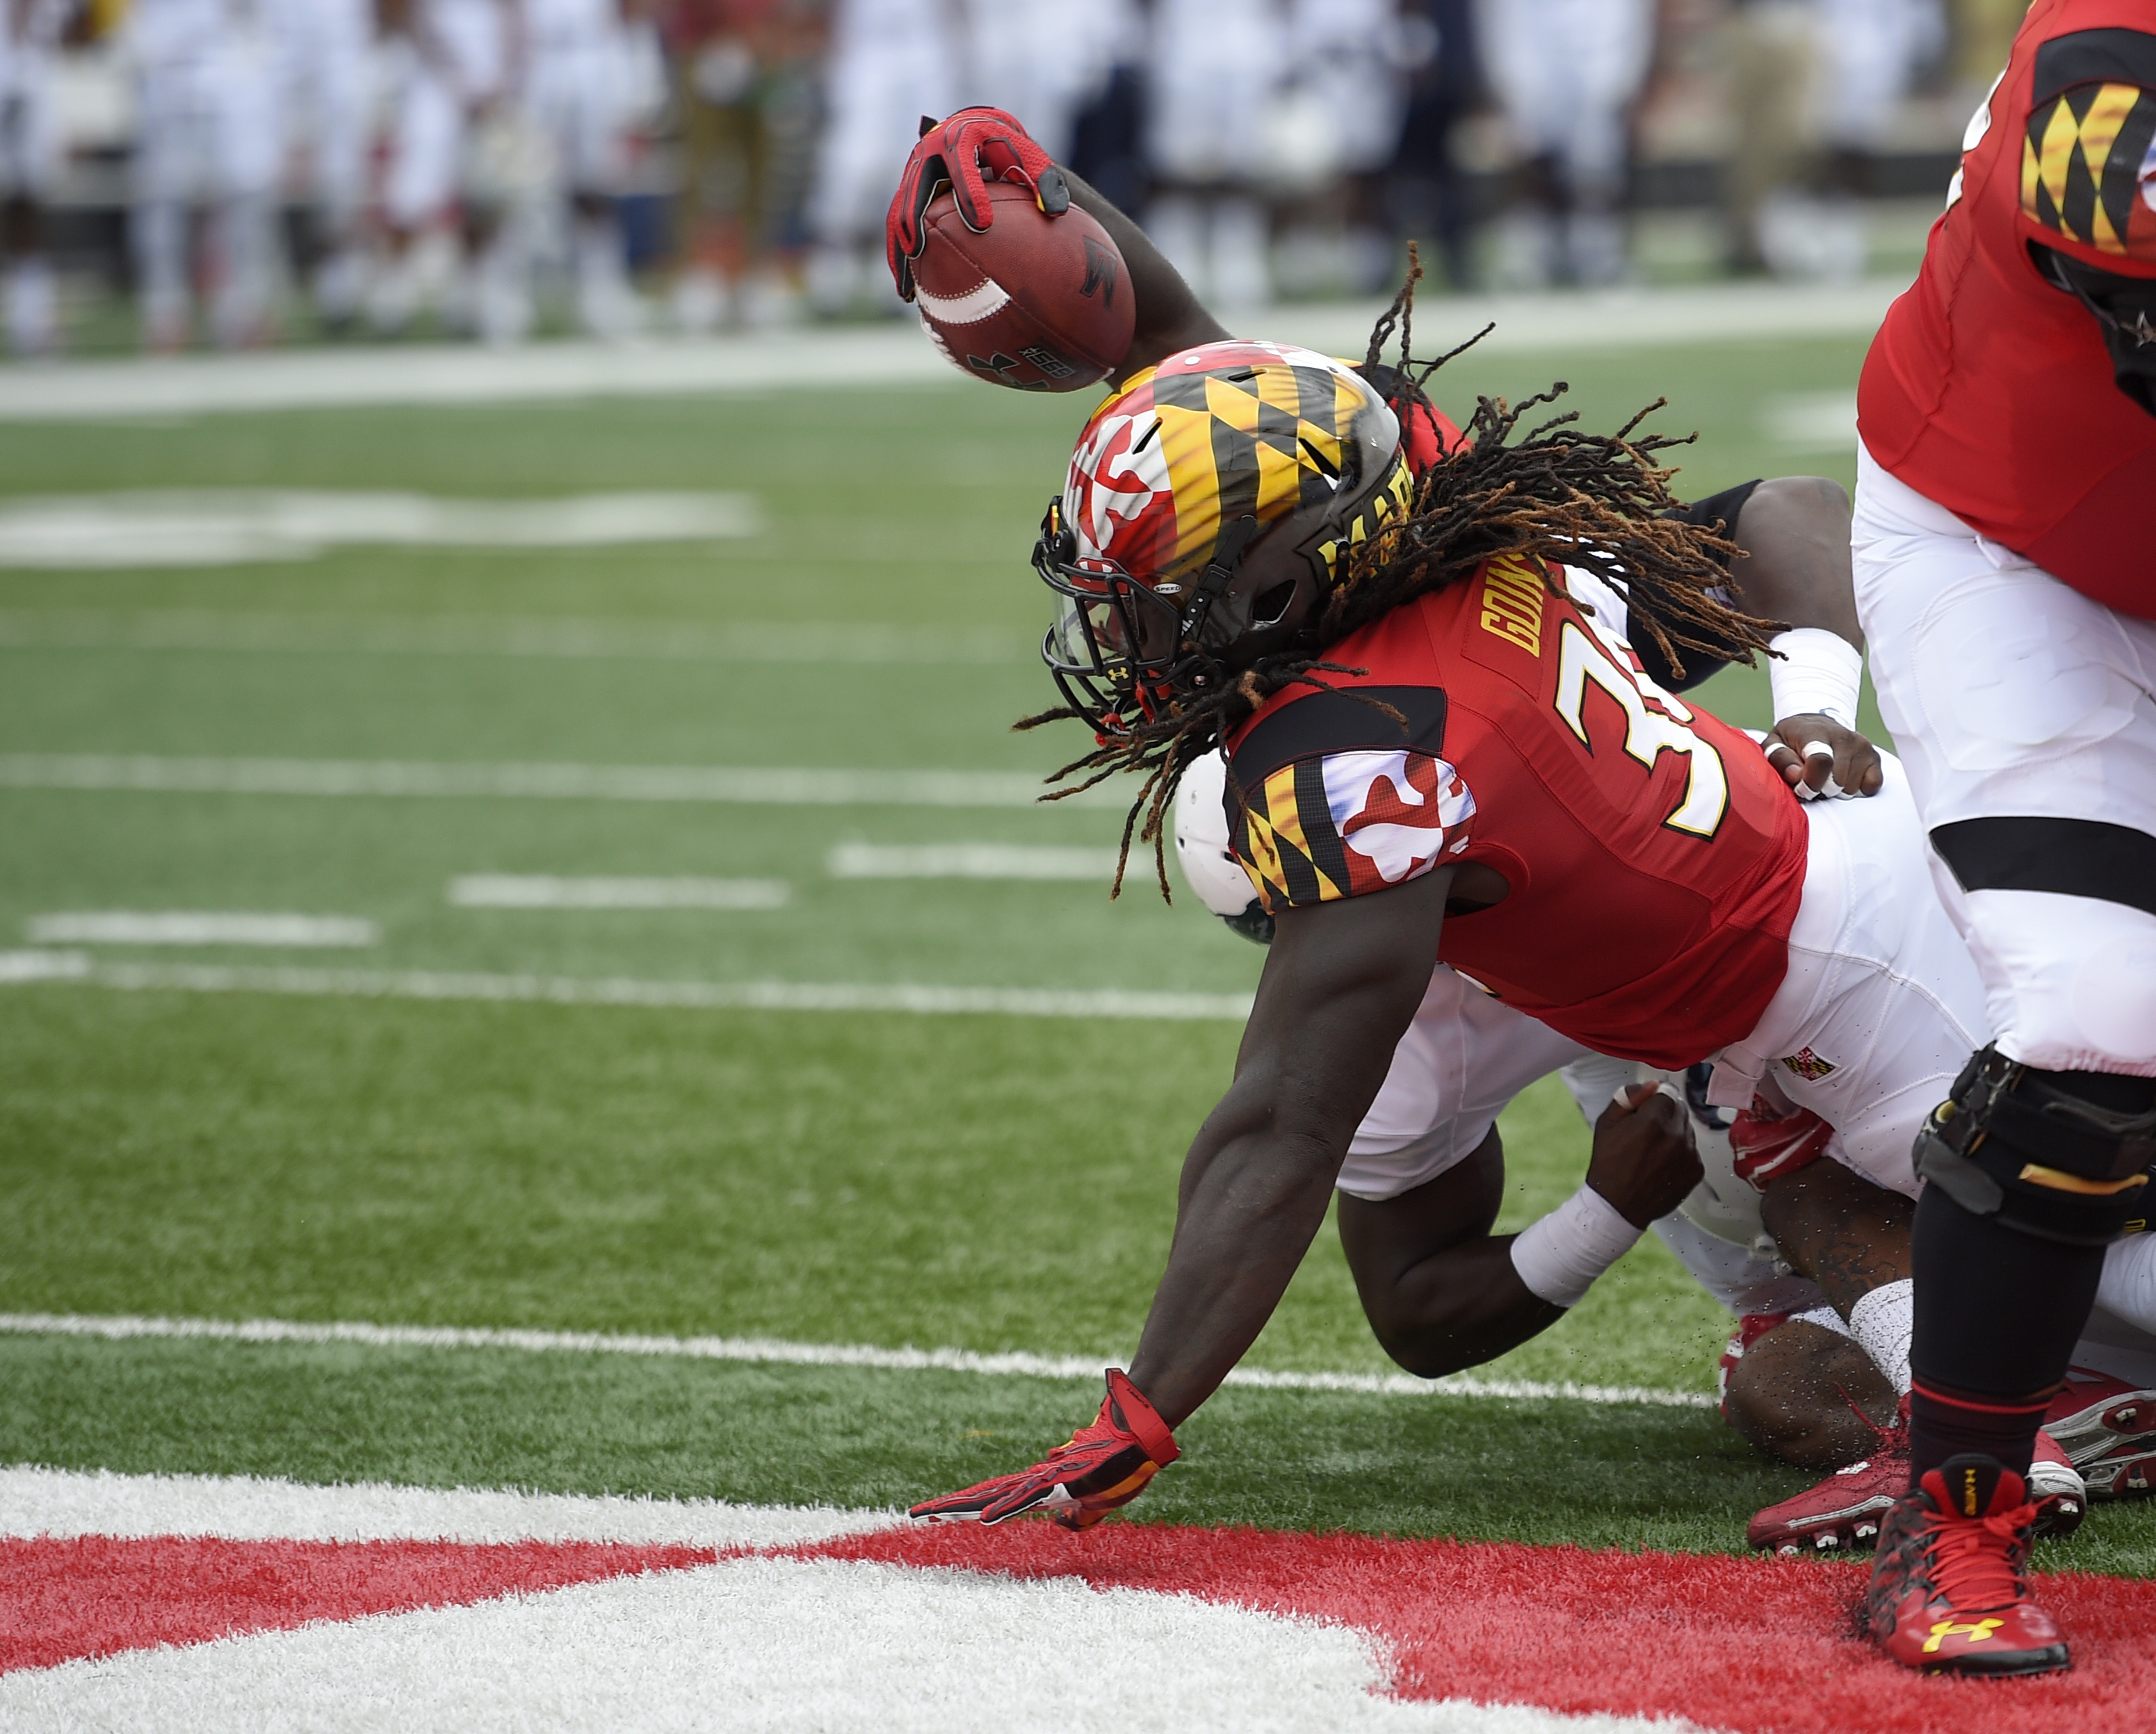 Maryland running back Kenneth Goins Jr. scores a touchdown during the first half of an NCAA college football game against Howard, Saturday, Sept. 3, 2016, in College Park, Md. (AP Photo/Nick Wass)